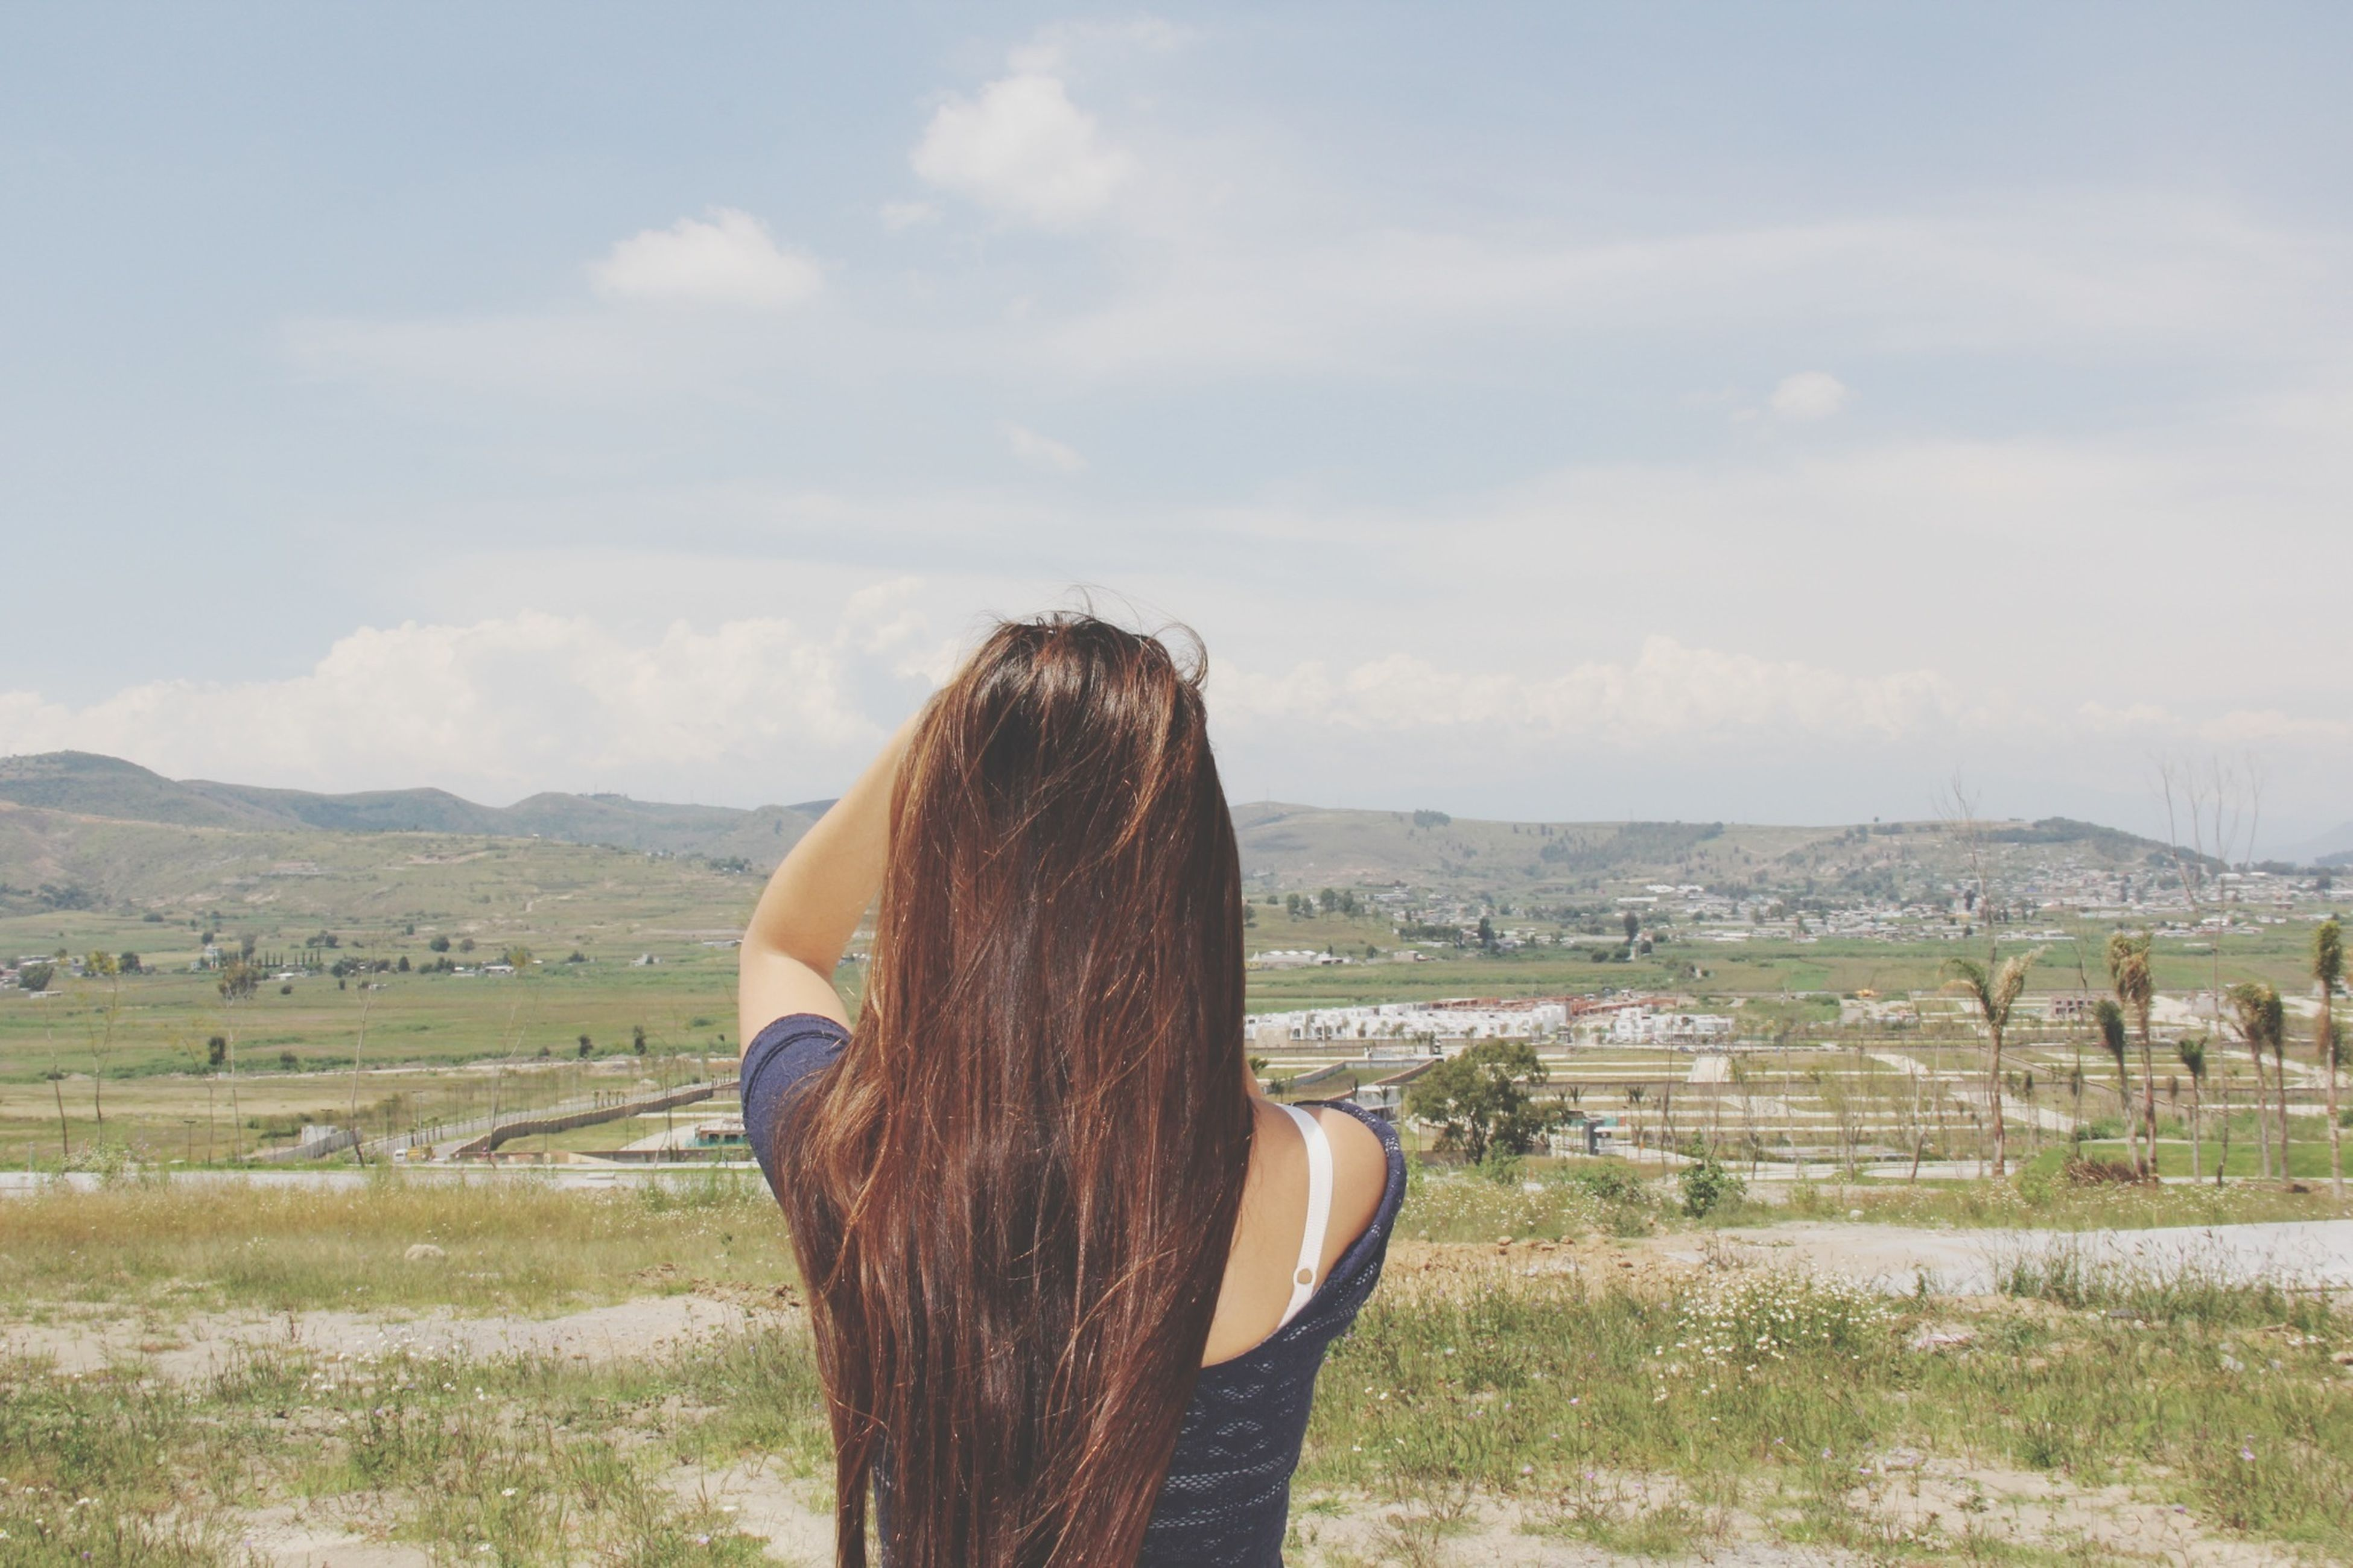 long hair, landscape, sky, mountain, lifestyles, rear view, young adult, young women, person, leisure activity, field, tranquility, tranquil scene, casual clothing, nature, grass, standing, scenics